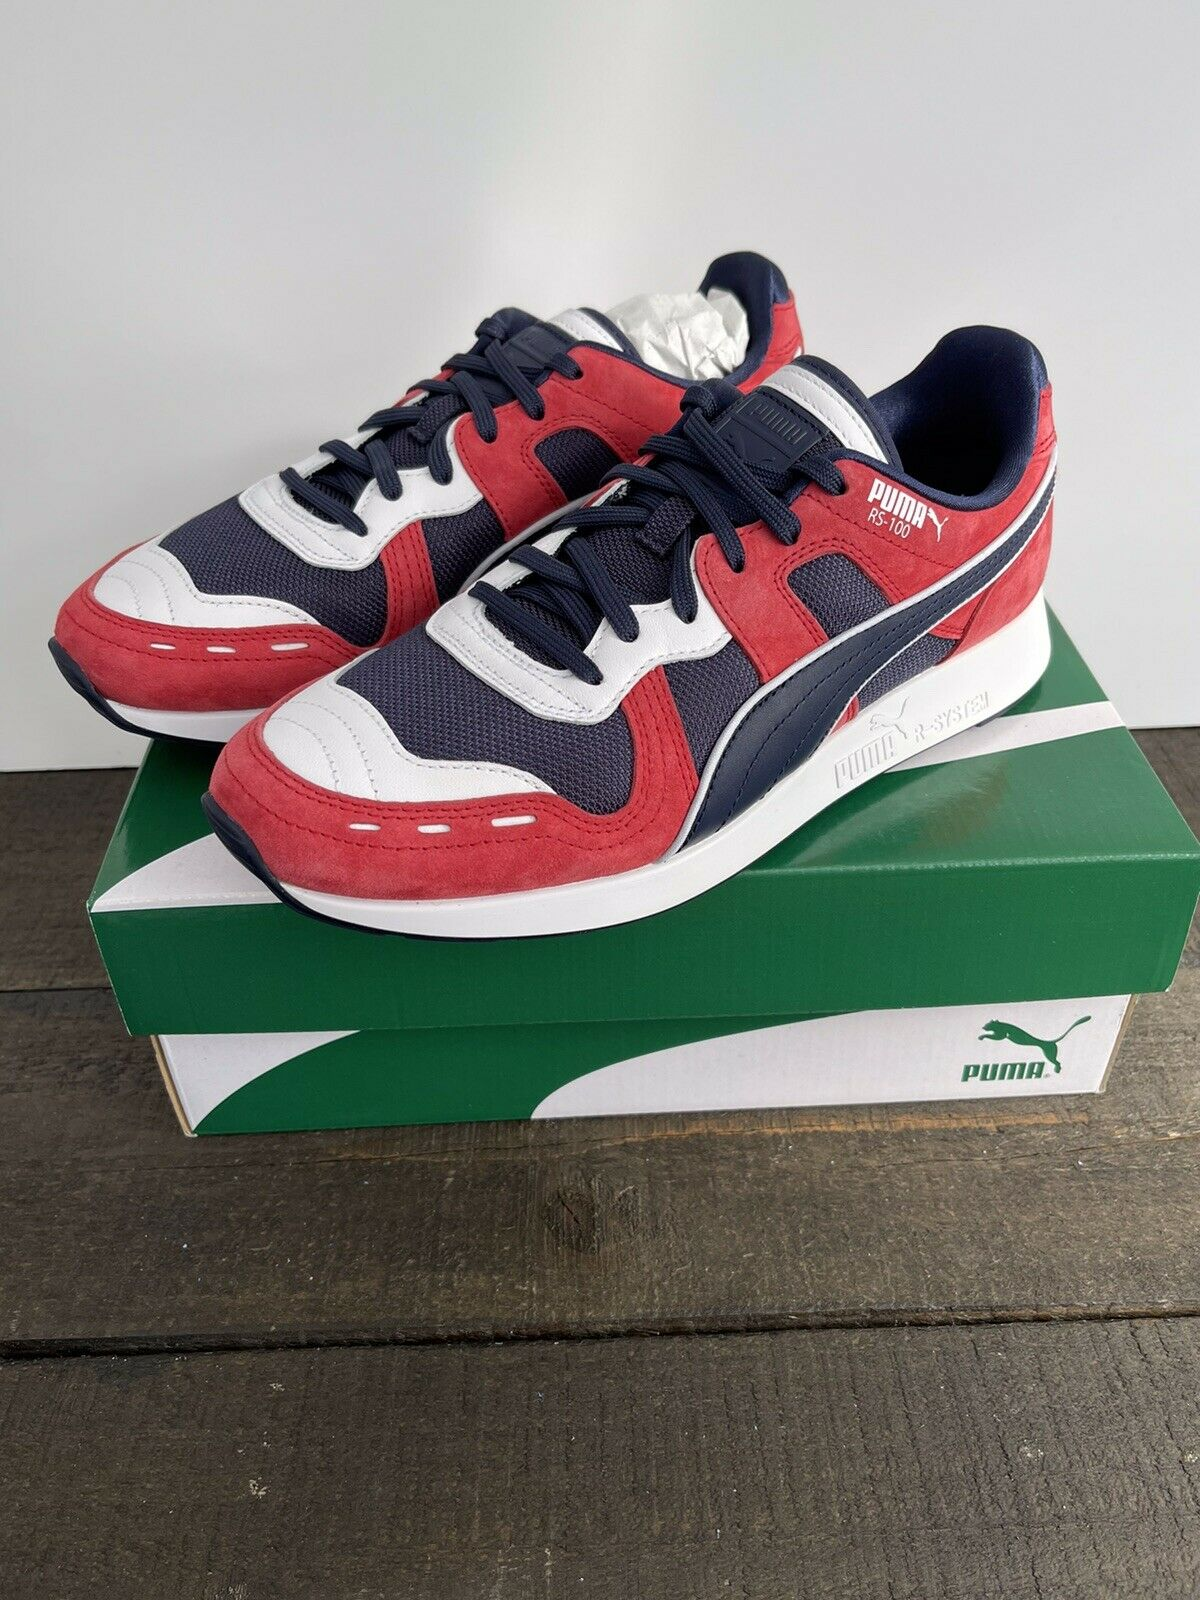 Size- 7.5 Men's Puma Rs-100 SNbk Peacoat- Red- Puma White Sneaker R- System